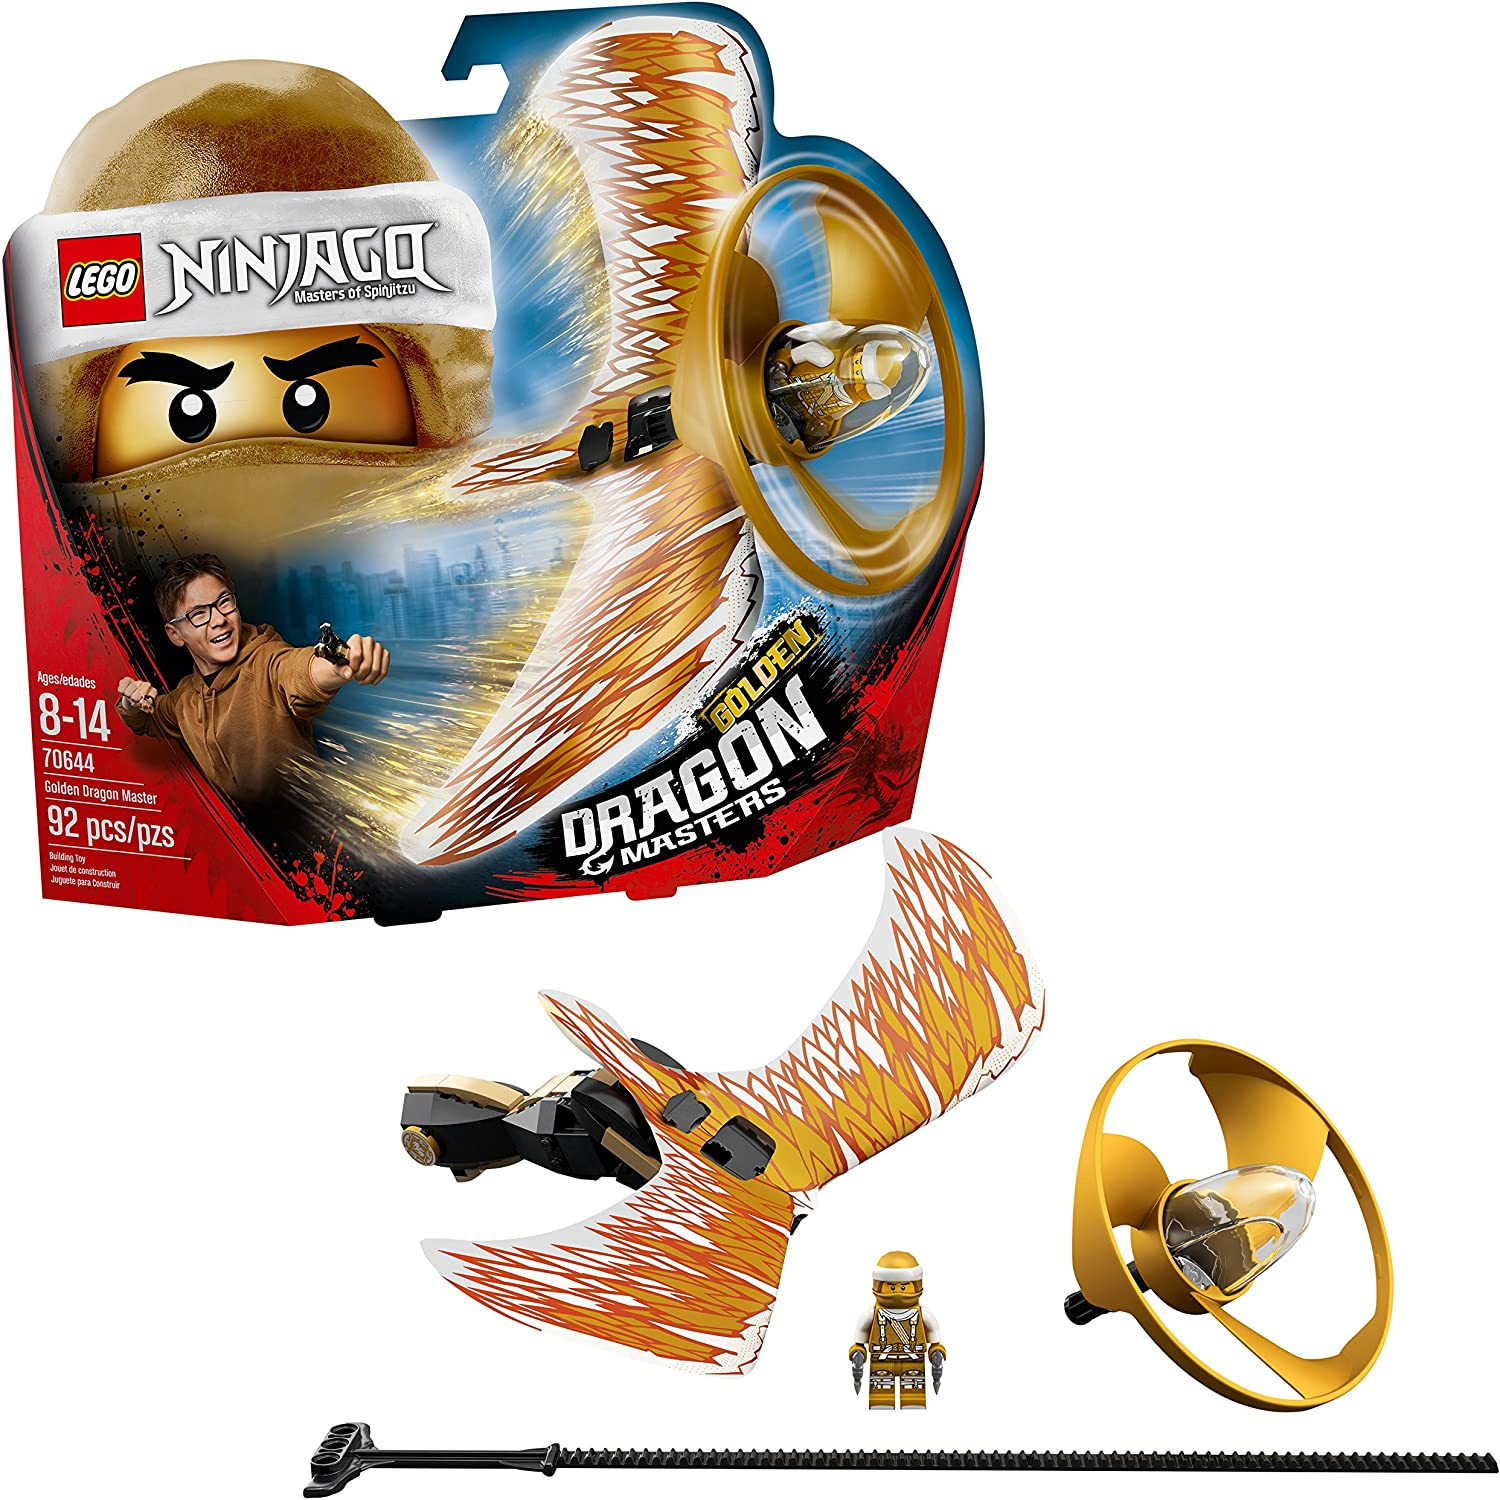 LEGO NINJAGO Golden Dragon Master 70644 Building Kit (92 Piece)